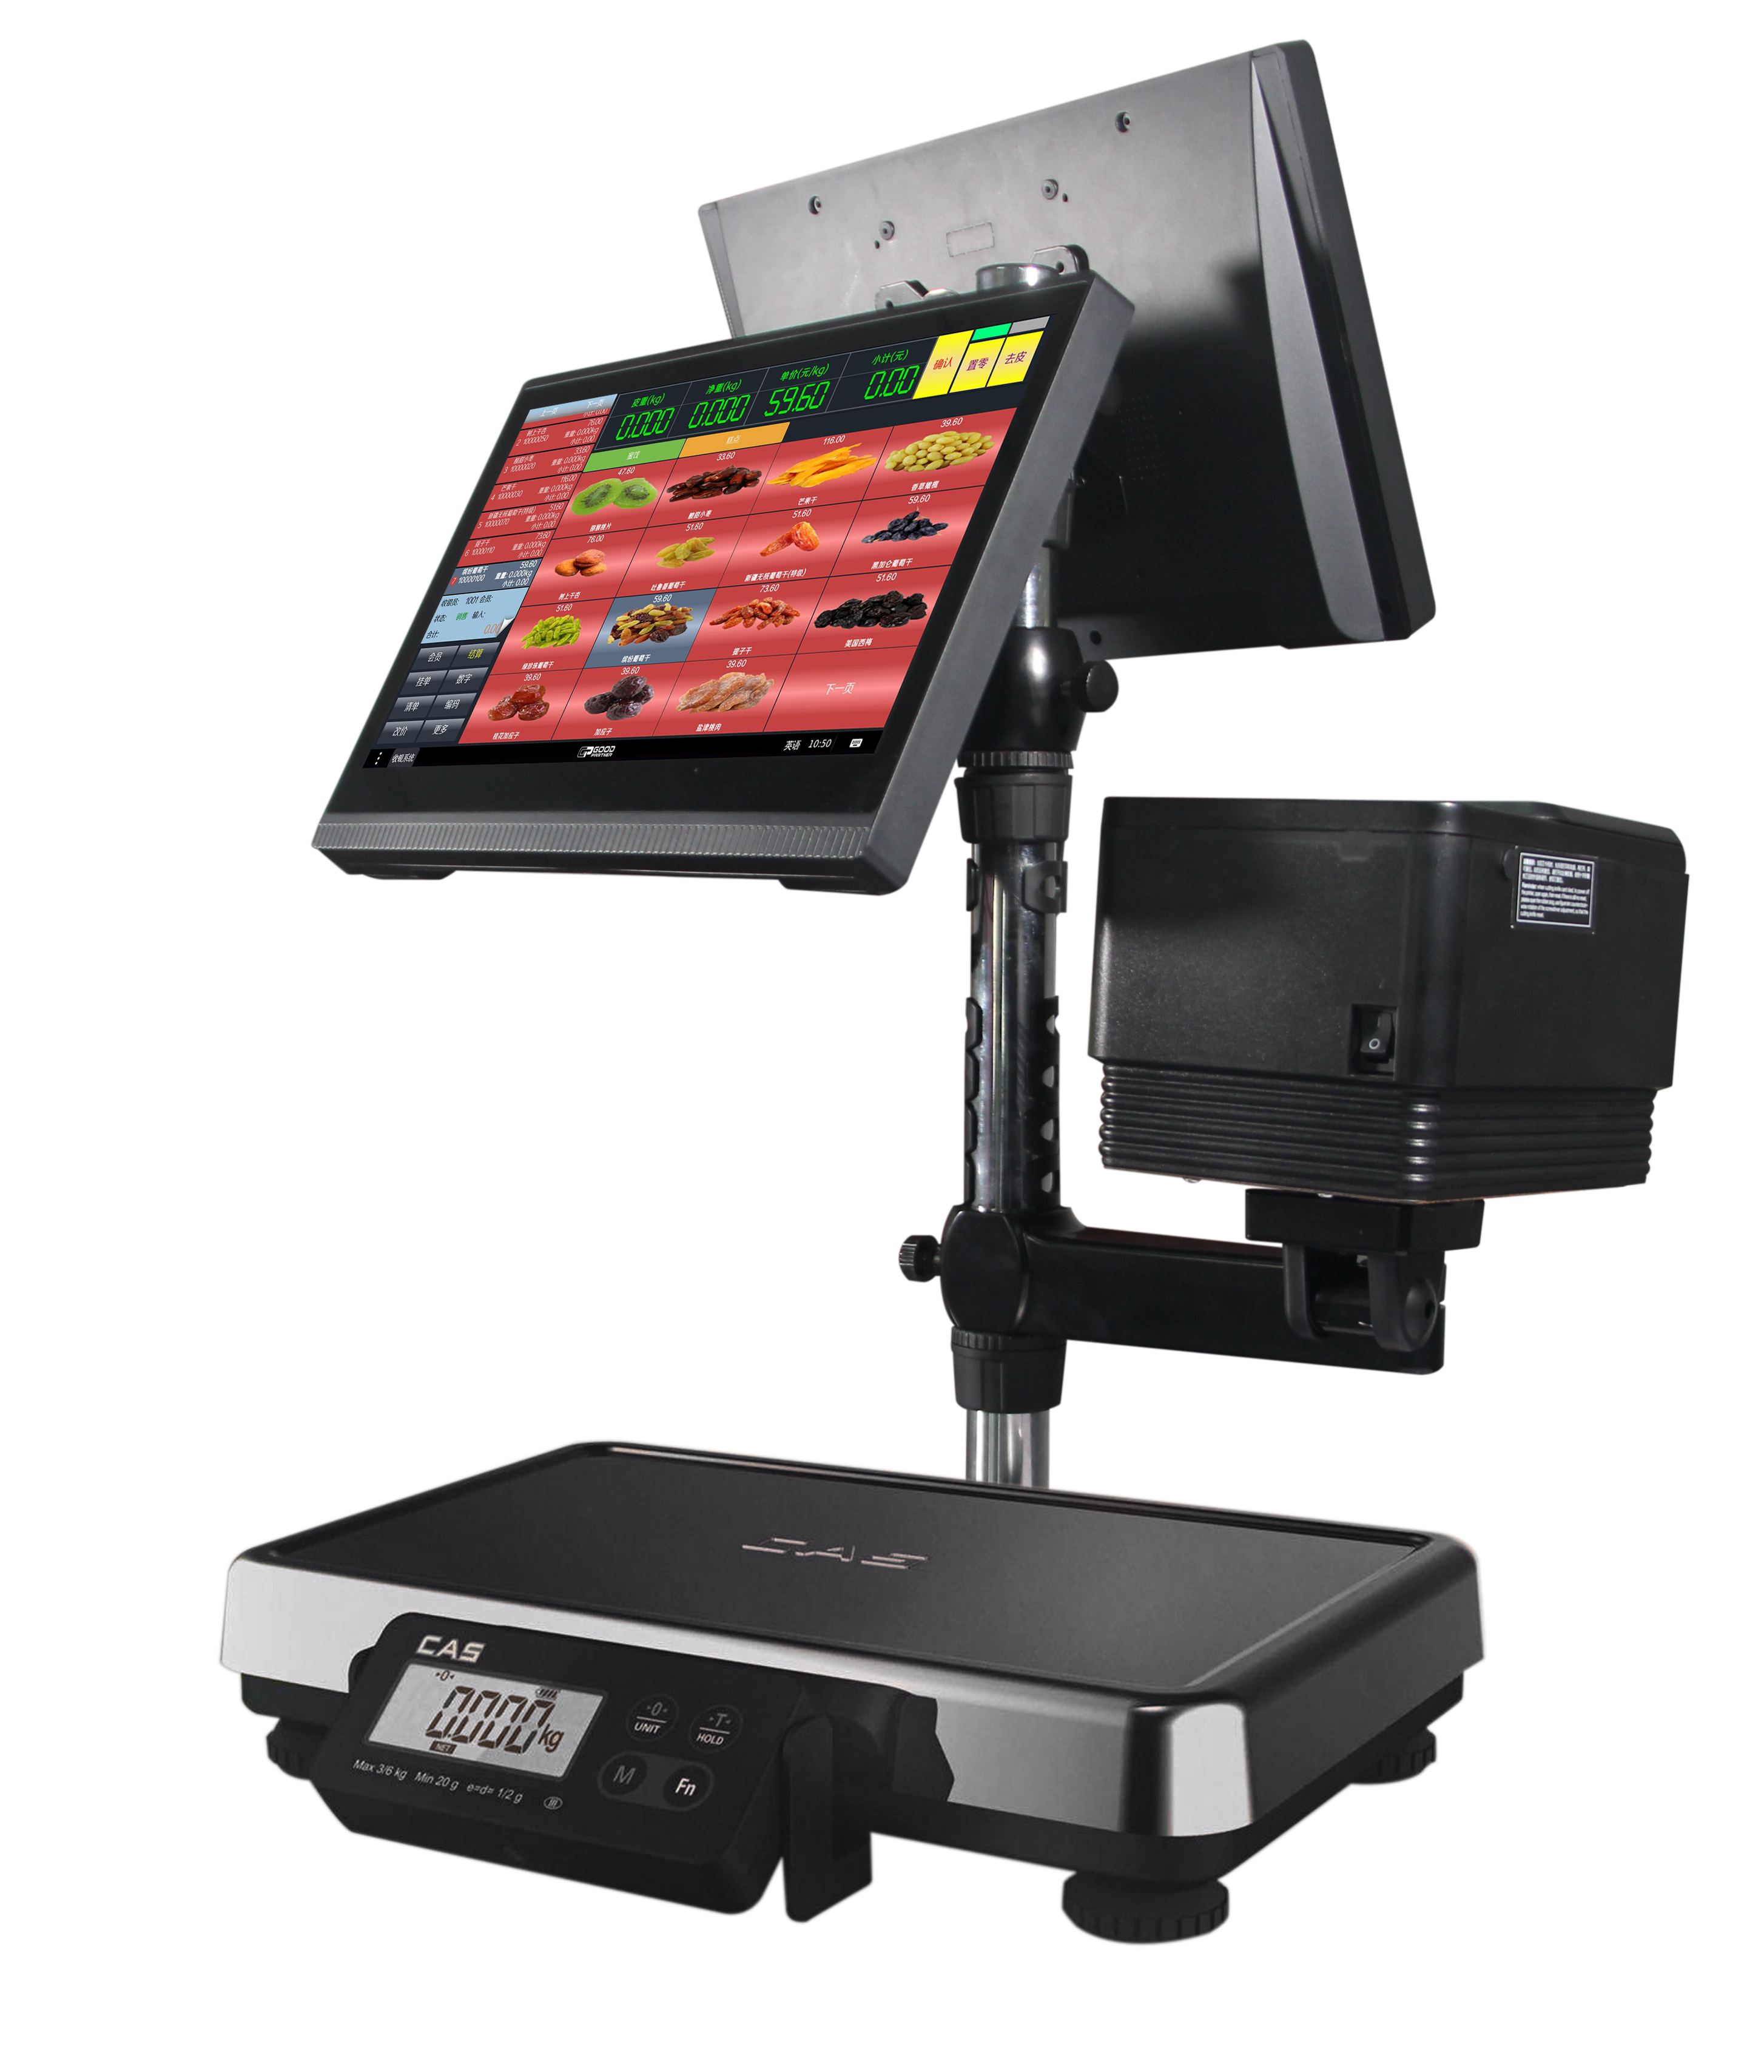 HDD-780 All in one payment terminal cash register dual screen 14 inch capacitive touch panel with 80mm printer POS systems